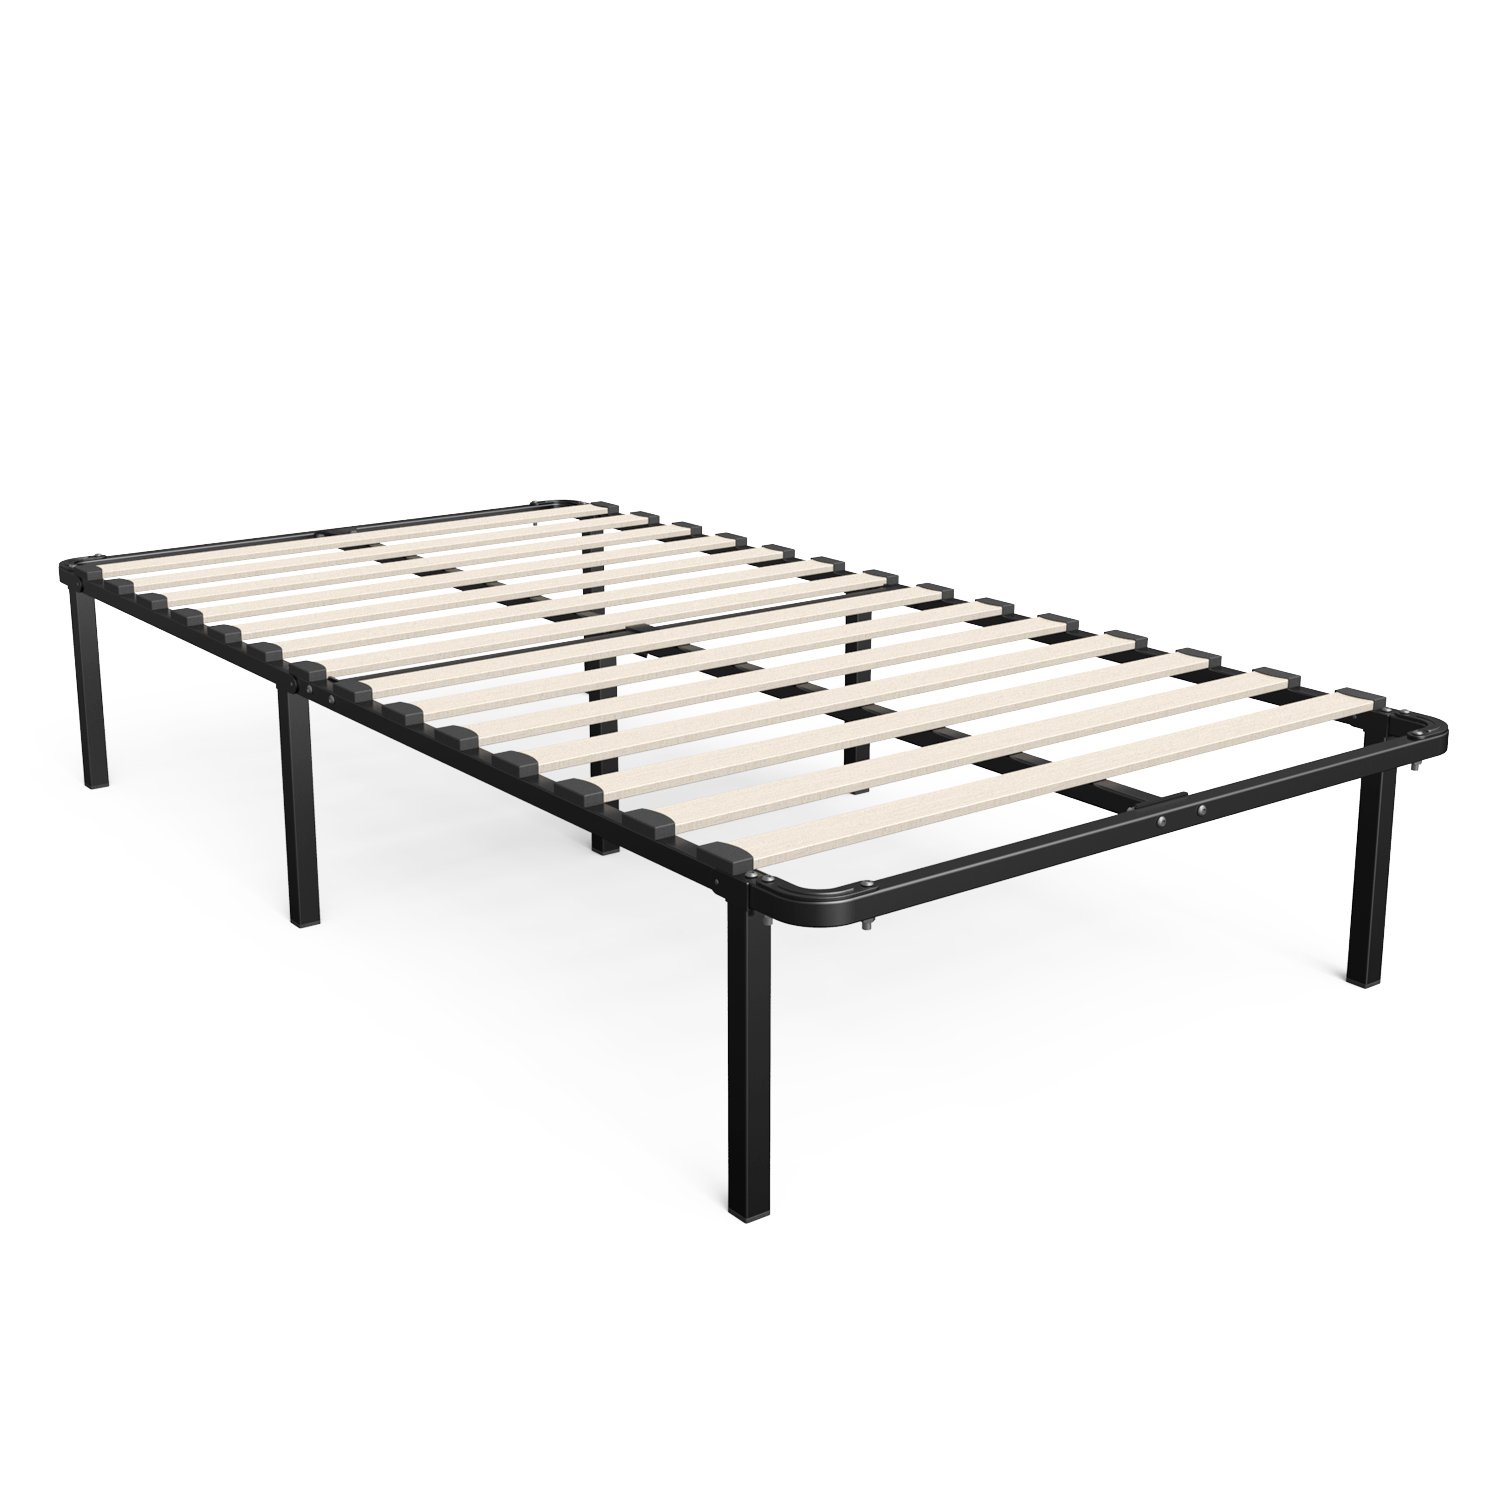 Zinus Cynthia 14 Inch Myeuro Smartbase Wooden Slat Mattress Foundation Platform Bed Frame Box Spring Replacement Twin